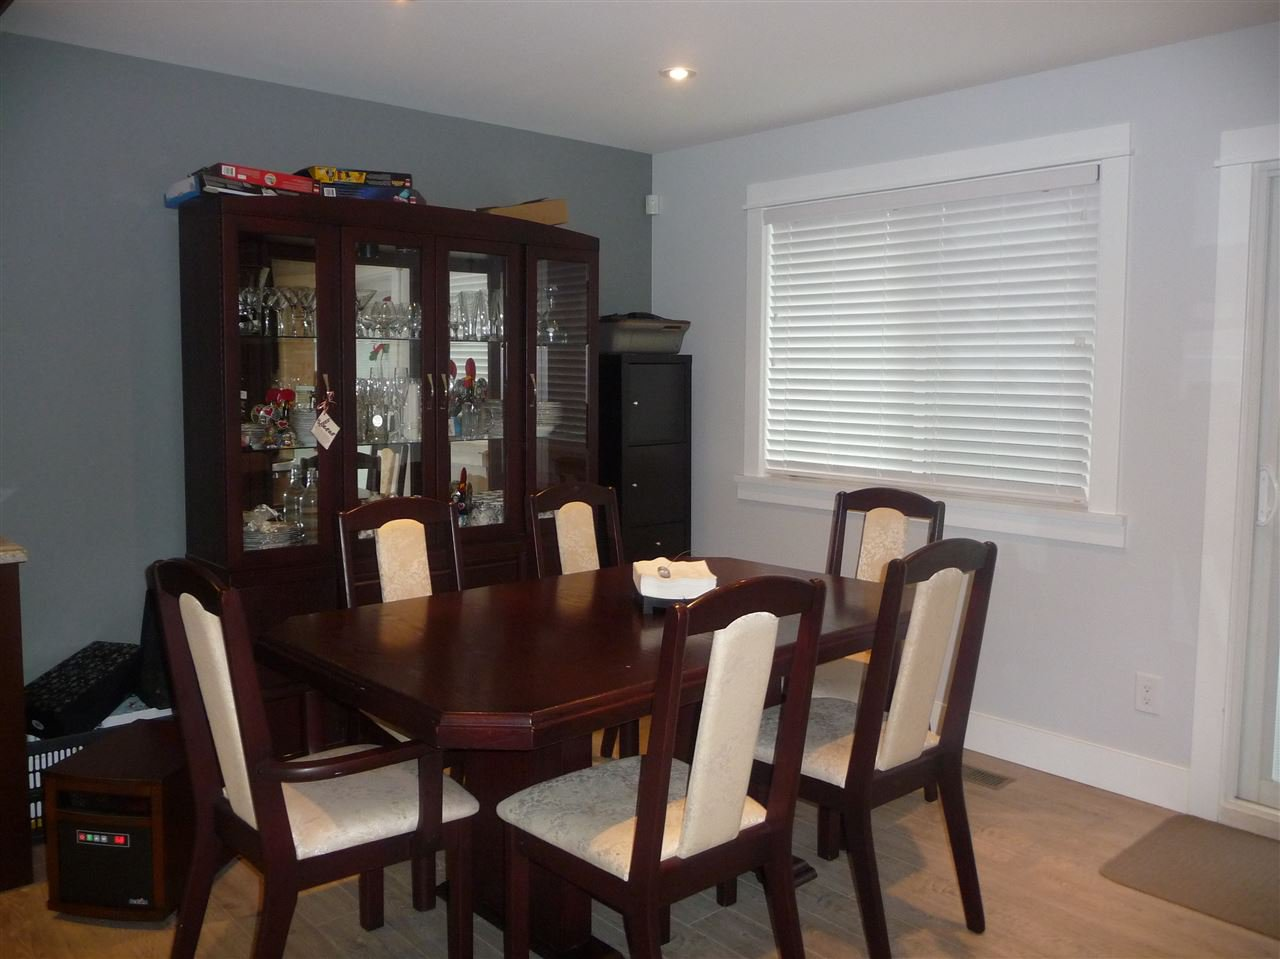 Photo 5: Photos: 8675 151B Street in Surrey: Bear Creek Green Timbers House for sale : MLS®# R2036956